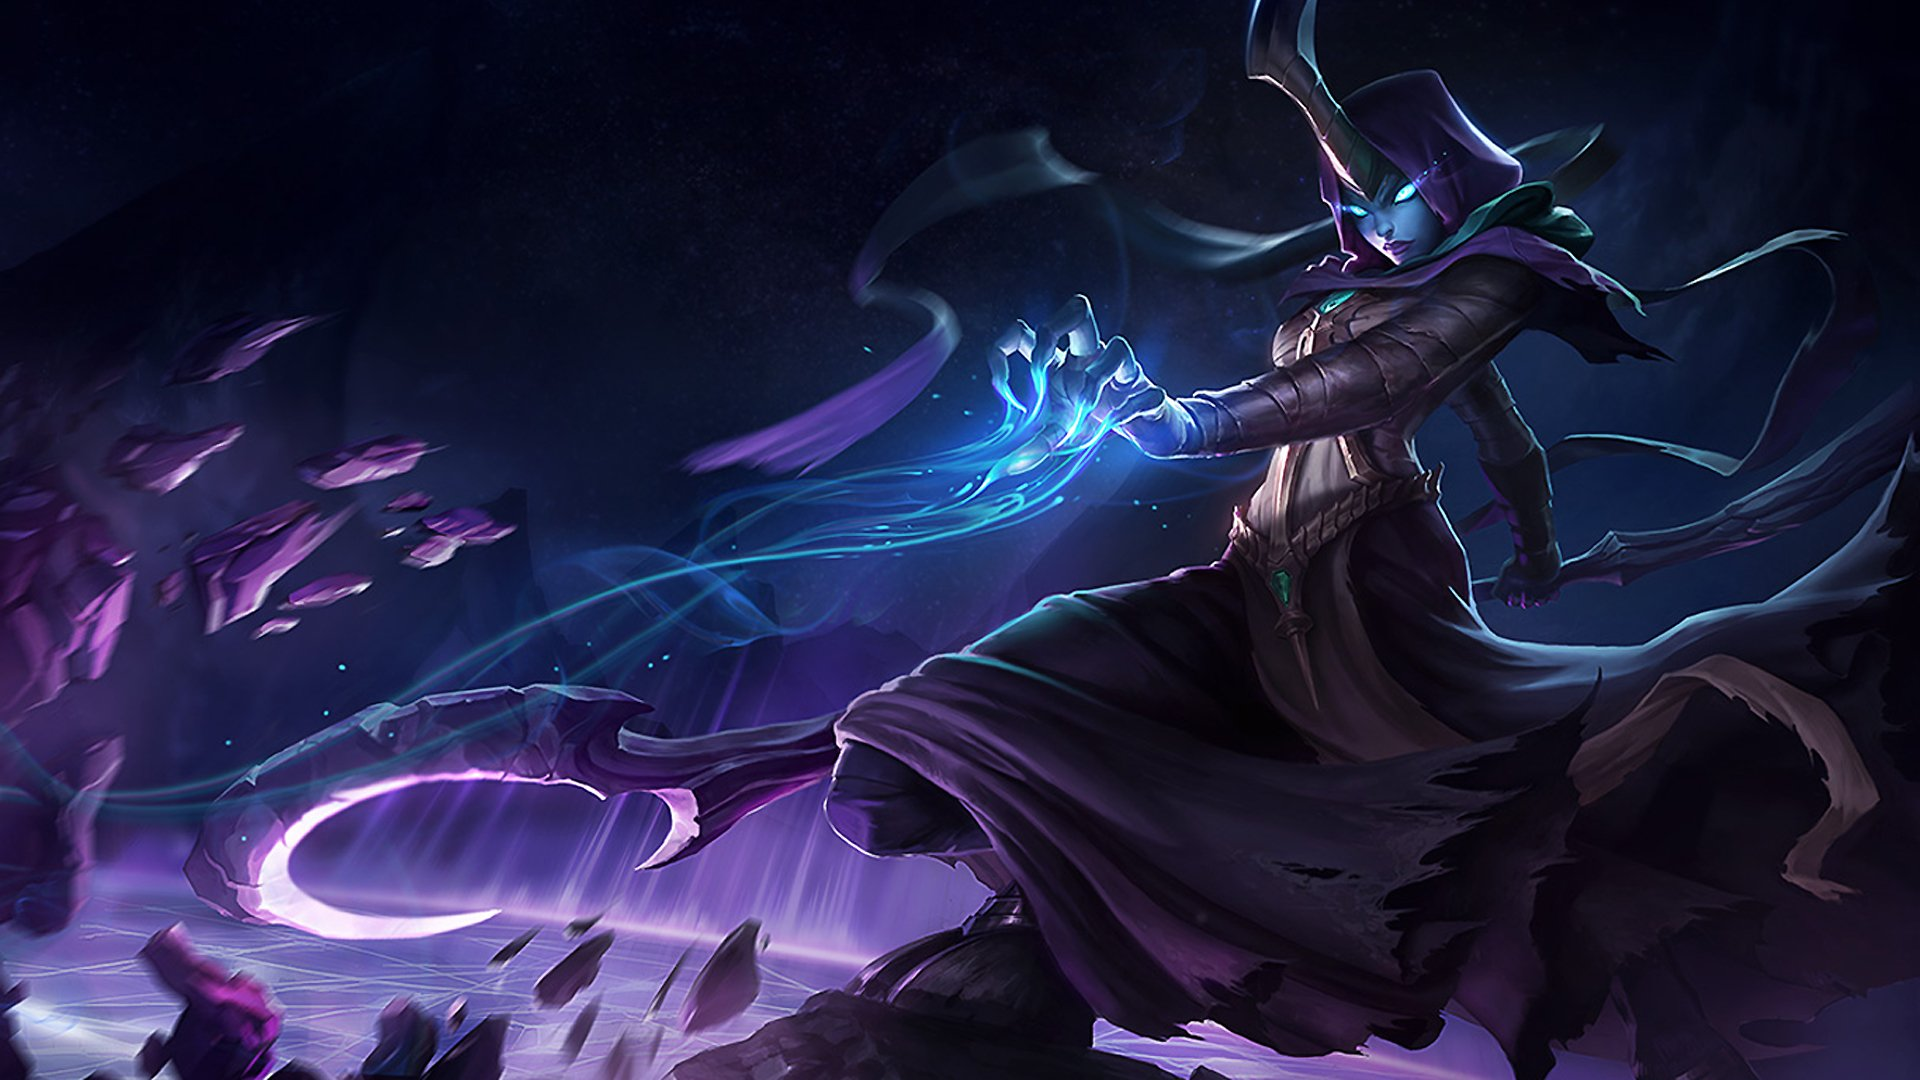 66 Soraka League Of Legends Hd Wallpapers Background Images